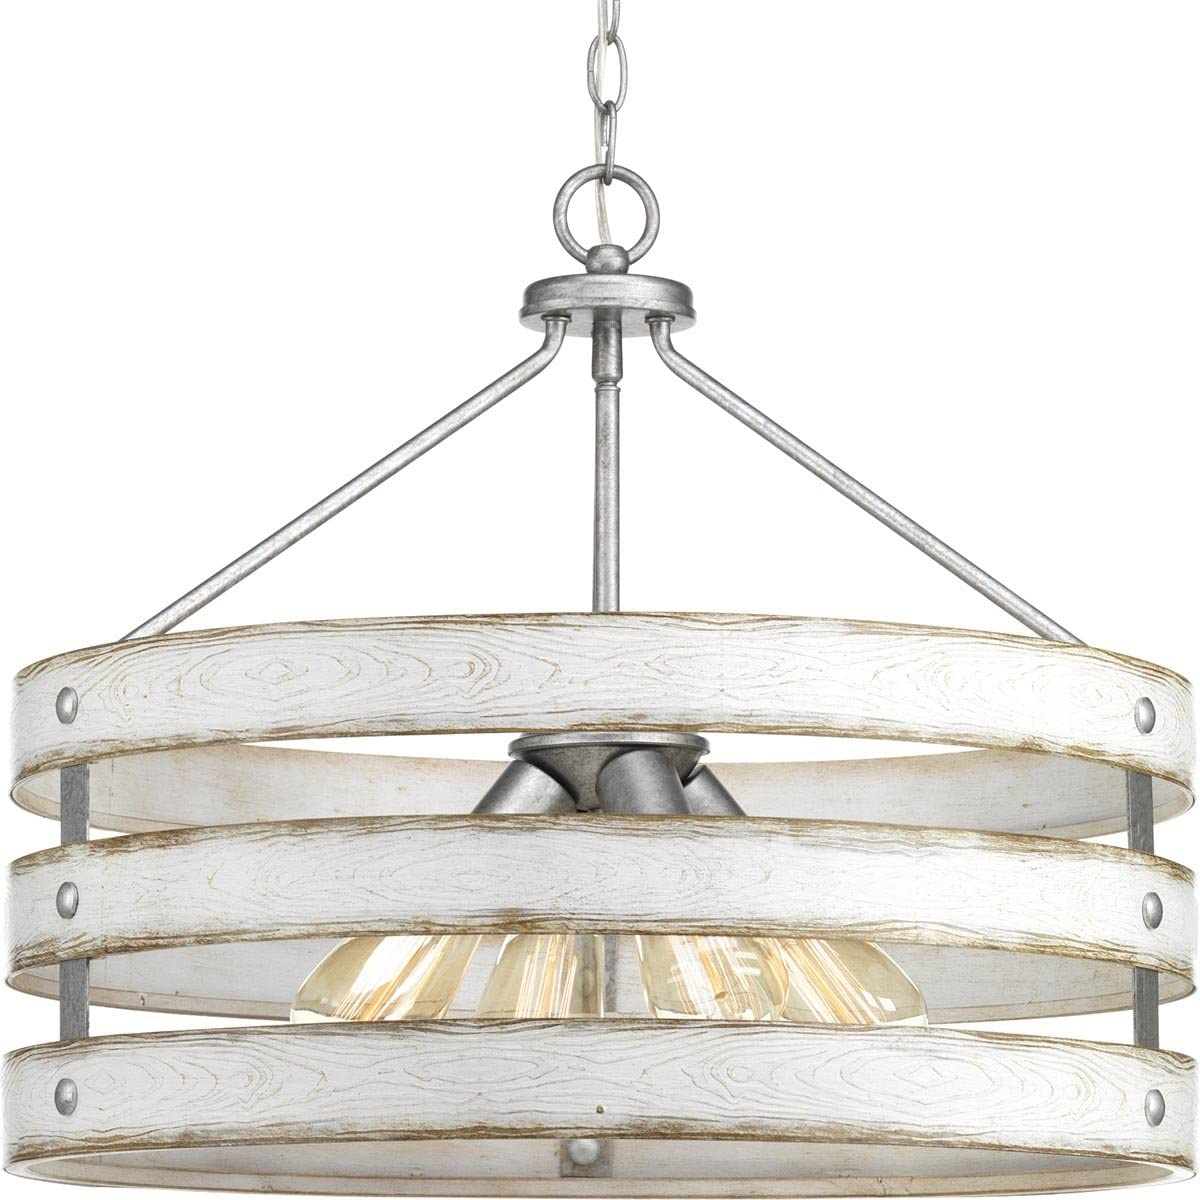 Progress Lighting P500023-141 Gulliver Four-Light Pendant, Galvanized Finish